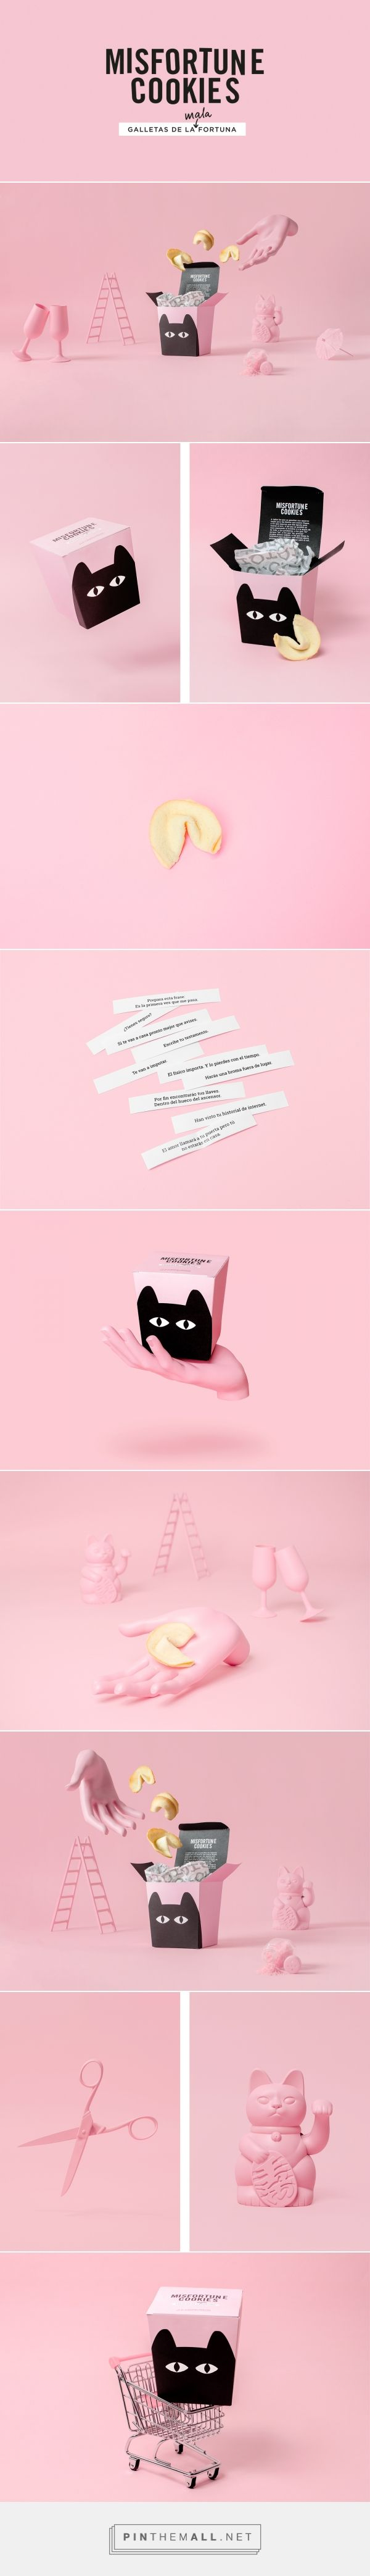 Misfortune Cookies Fortune Cookie Packaging by Adrià Molins | Fivestar Branding Agency – Design and Branding Agency & Curated Inspiration Gallery